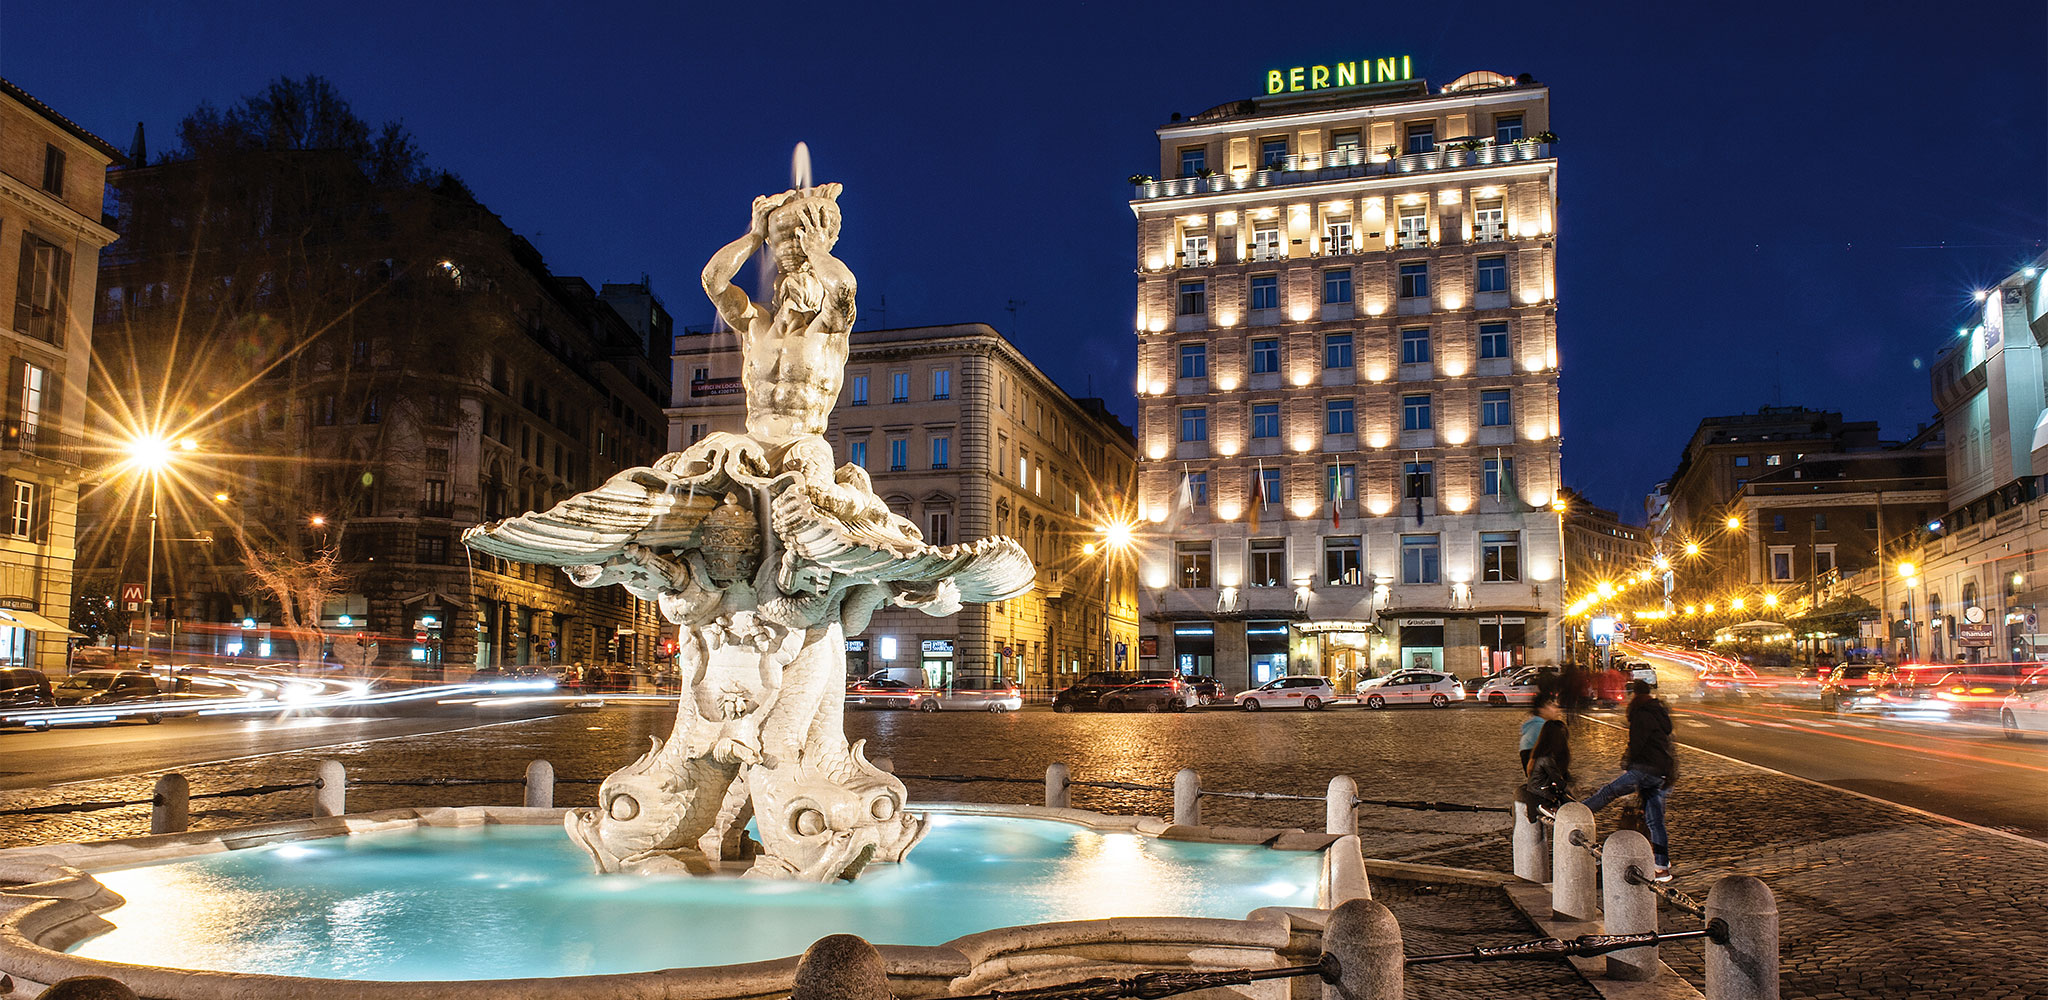 Hotel Bernini Bristol 5 Star Hotel In Rome Near Via Veneto Sina